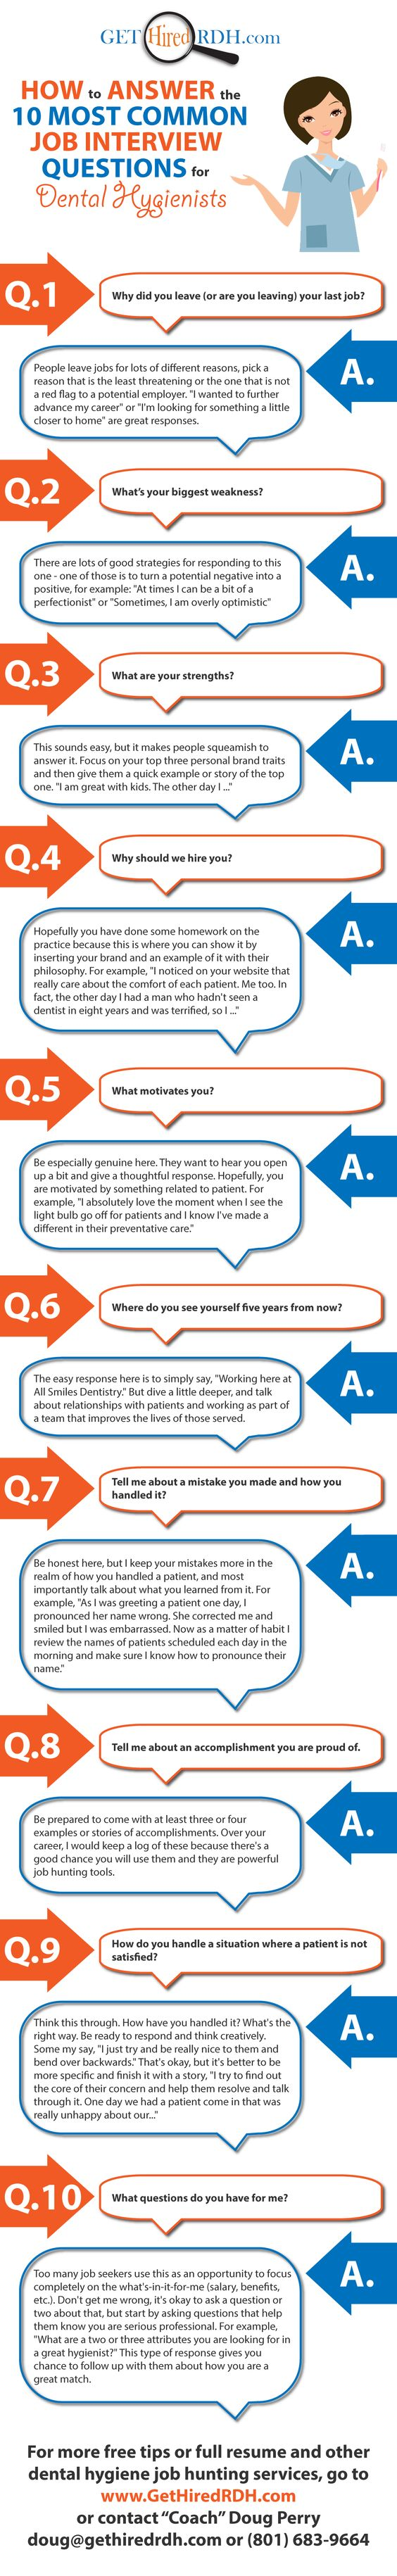 common computer troubleshooting questions My computer won't recognize my usb device the obvious first step is to try the device in another usb port users may also check to see if other usb devices are recognized, or if their usb device works on someone else's computer before resorting to more in-depth troubleshooting methods.